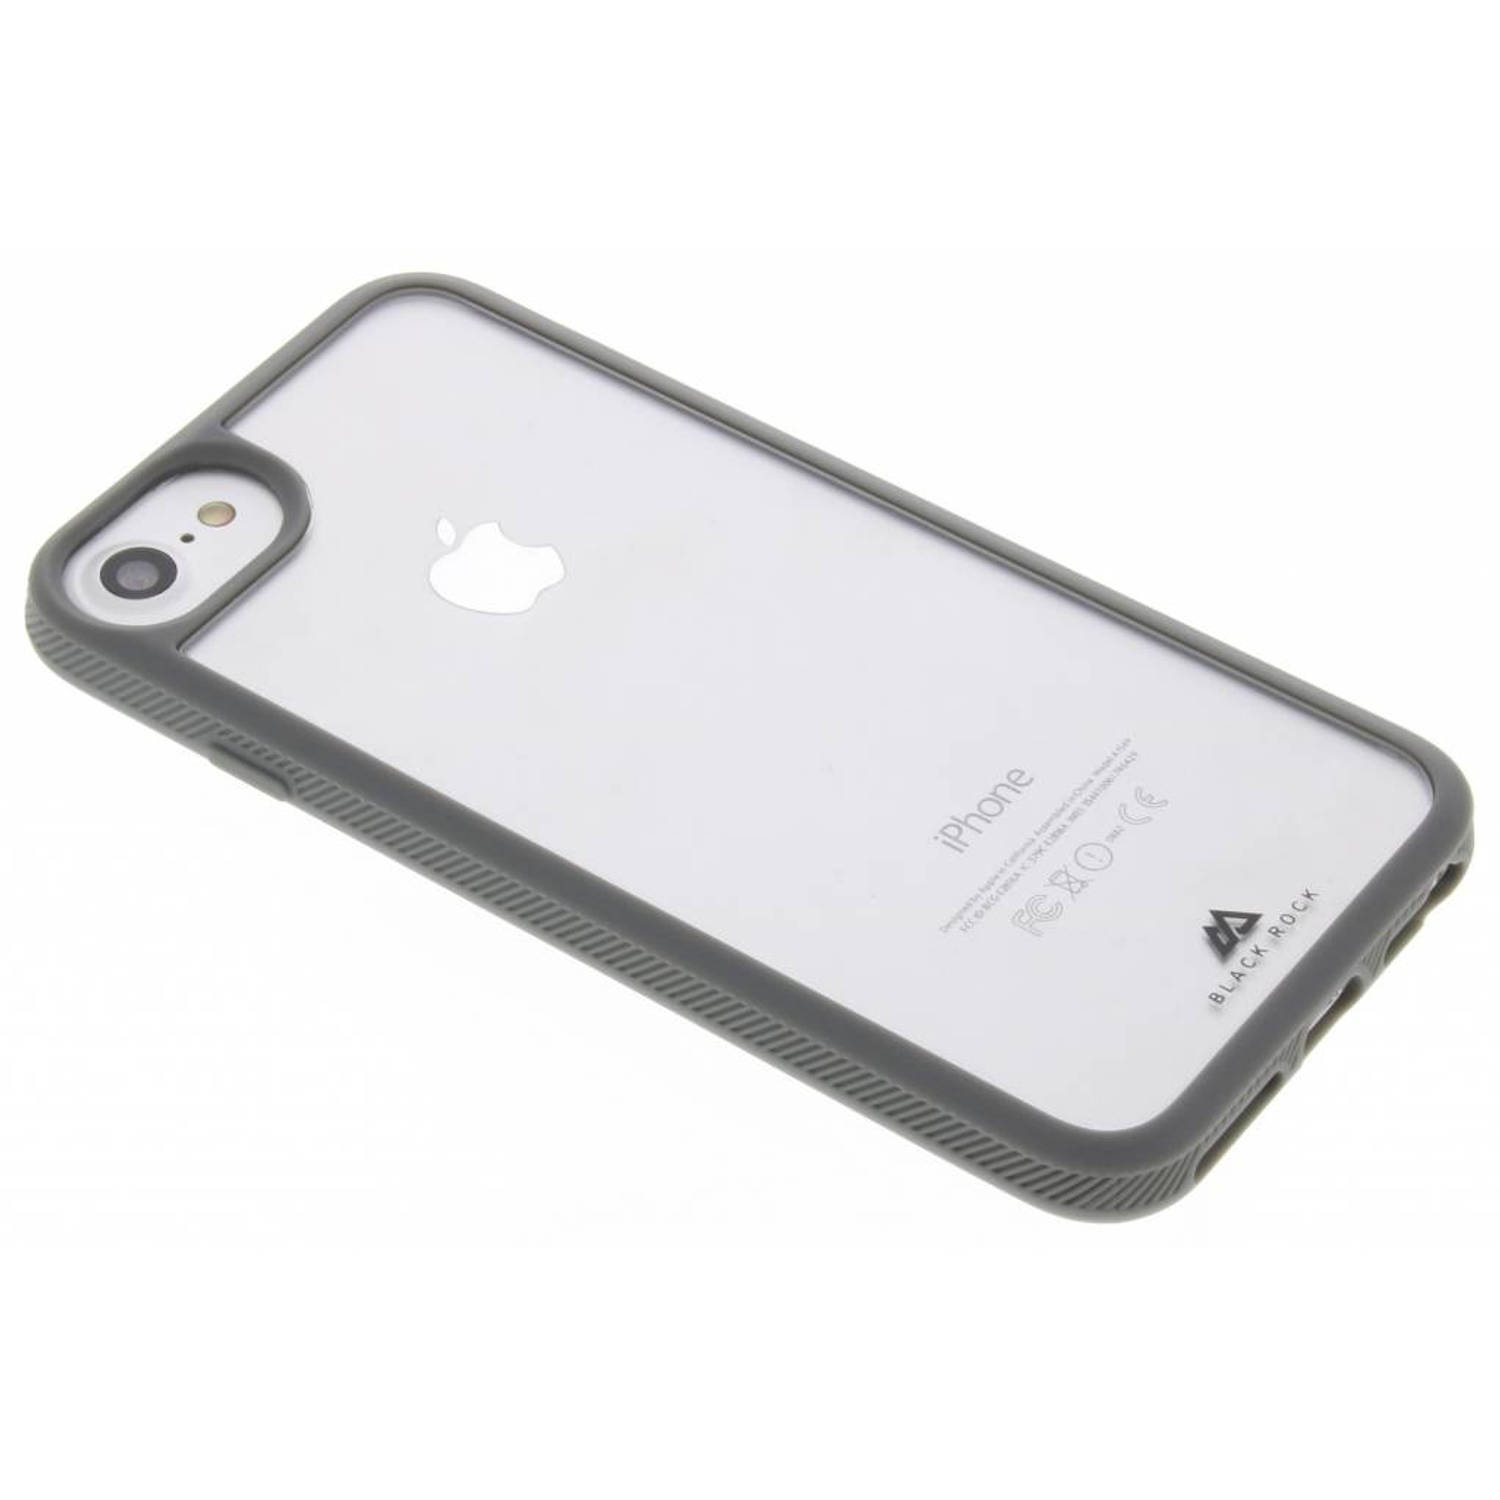 Glass Tough & Touch Case voor de iPhone 8 / 7 / 6s / 6 - Grijs